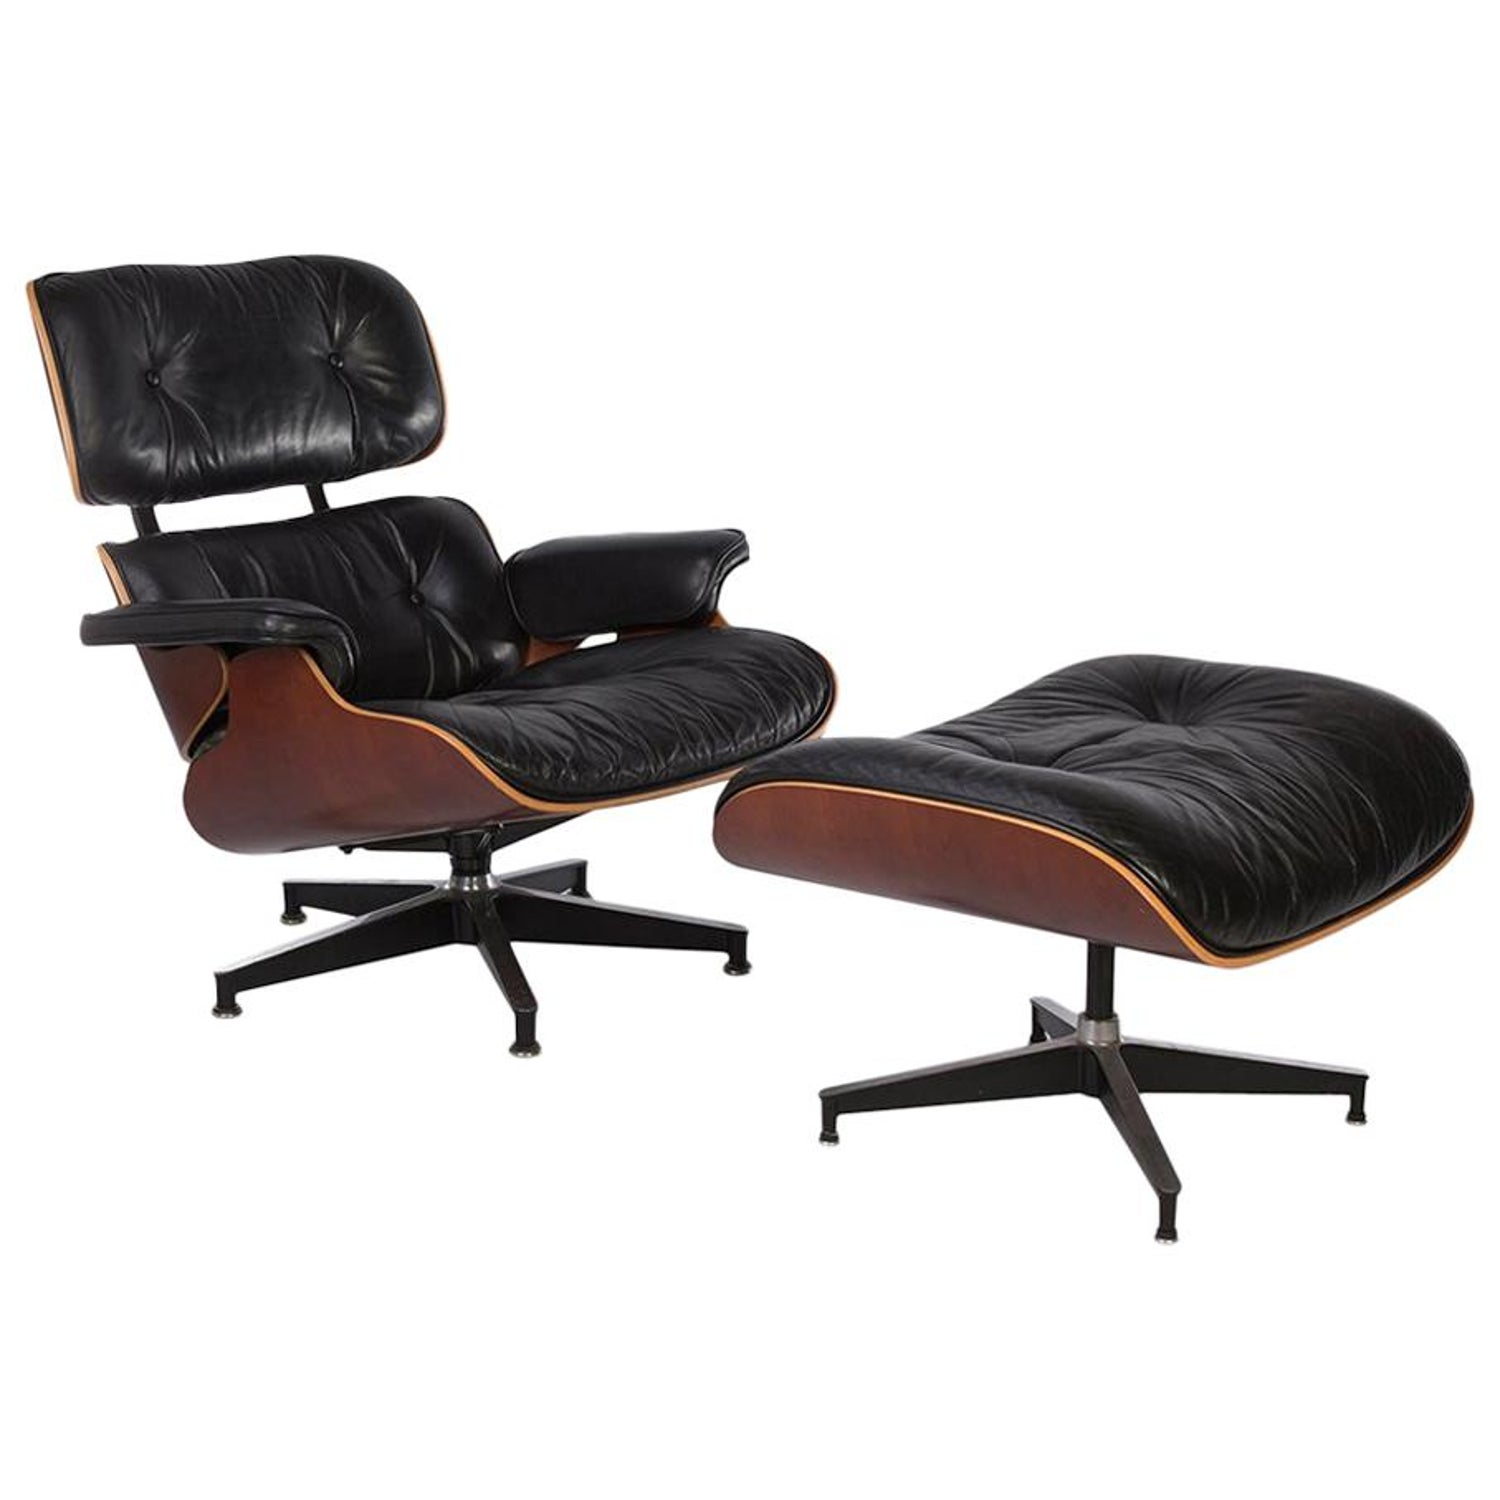 Stupendous Black And Natural Cherry Herman Miller Eames Original Lounge Chair And Ottoman Andrewgaddart Wooden Chair Designs For Living Room Andrewgaddartcom